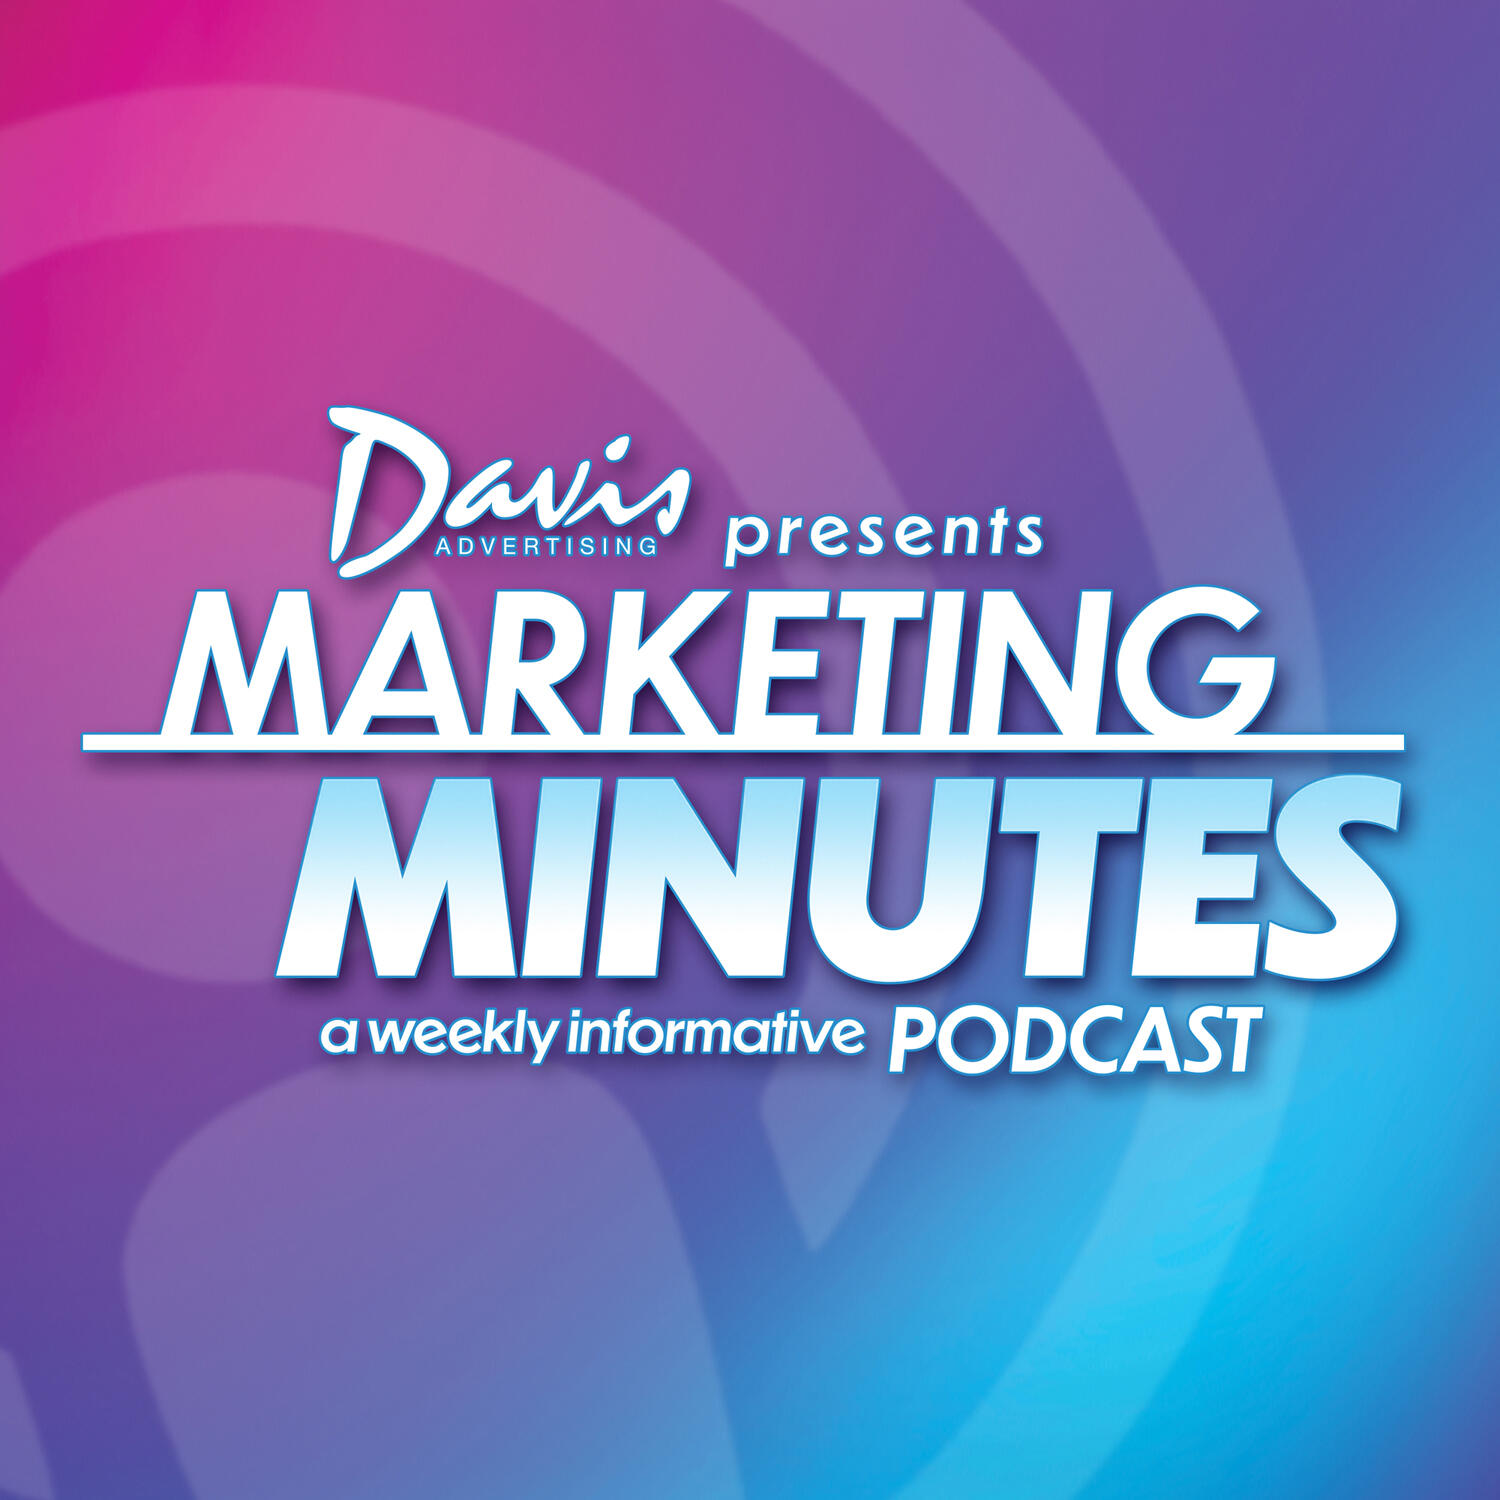 The Marketing Minutes